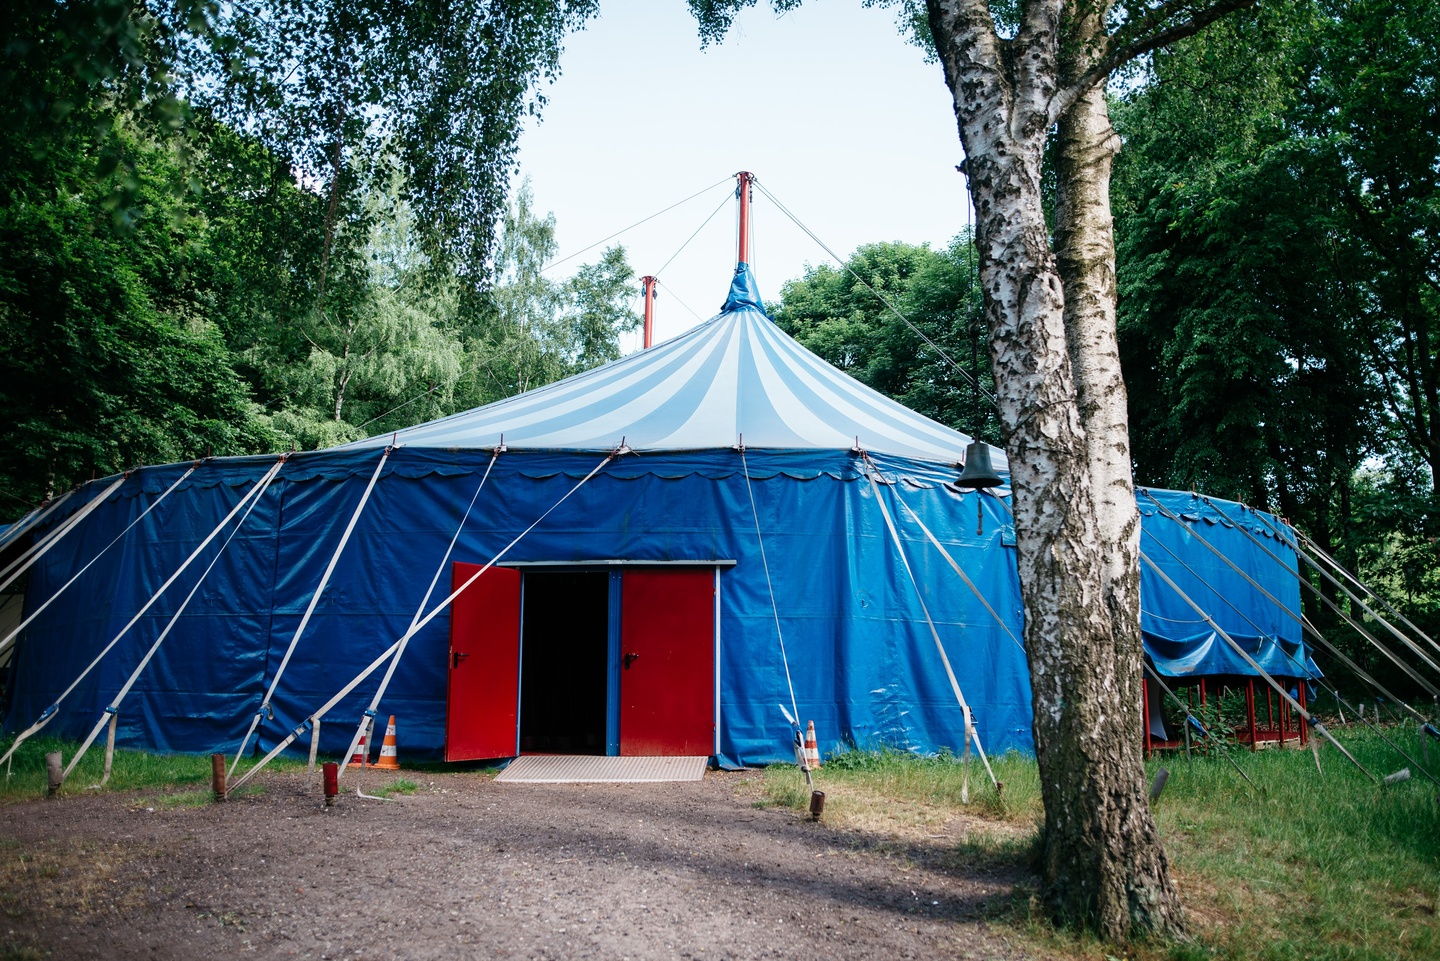 Hamburg workshop spaces Unusual Circus tent - circus Mignon image 2